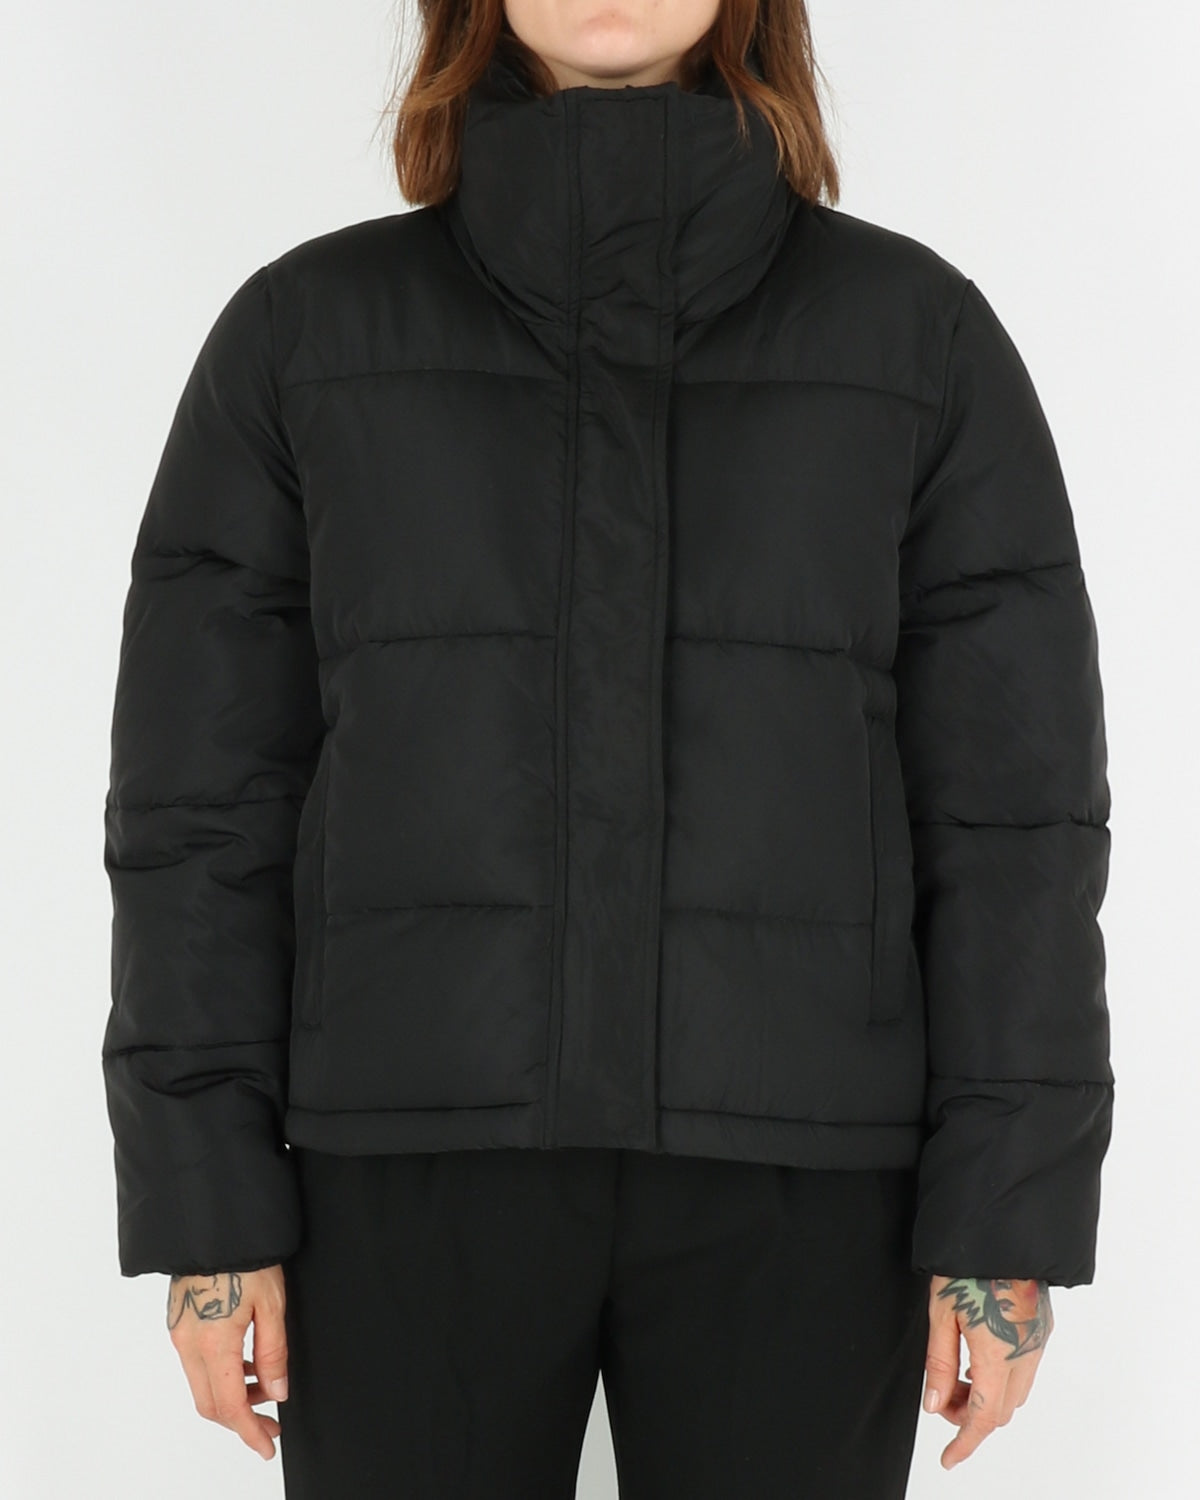 selfhood_puffer jacket 77126_black_1_5